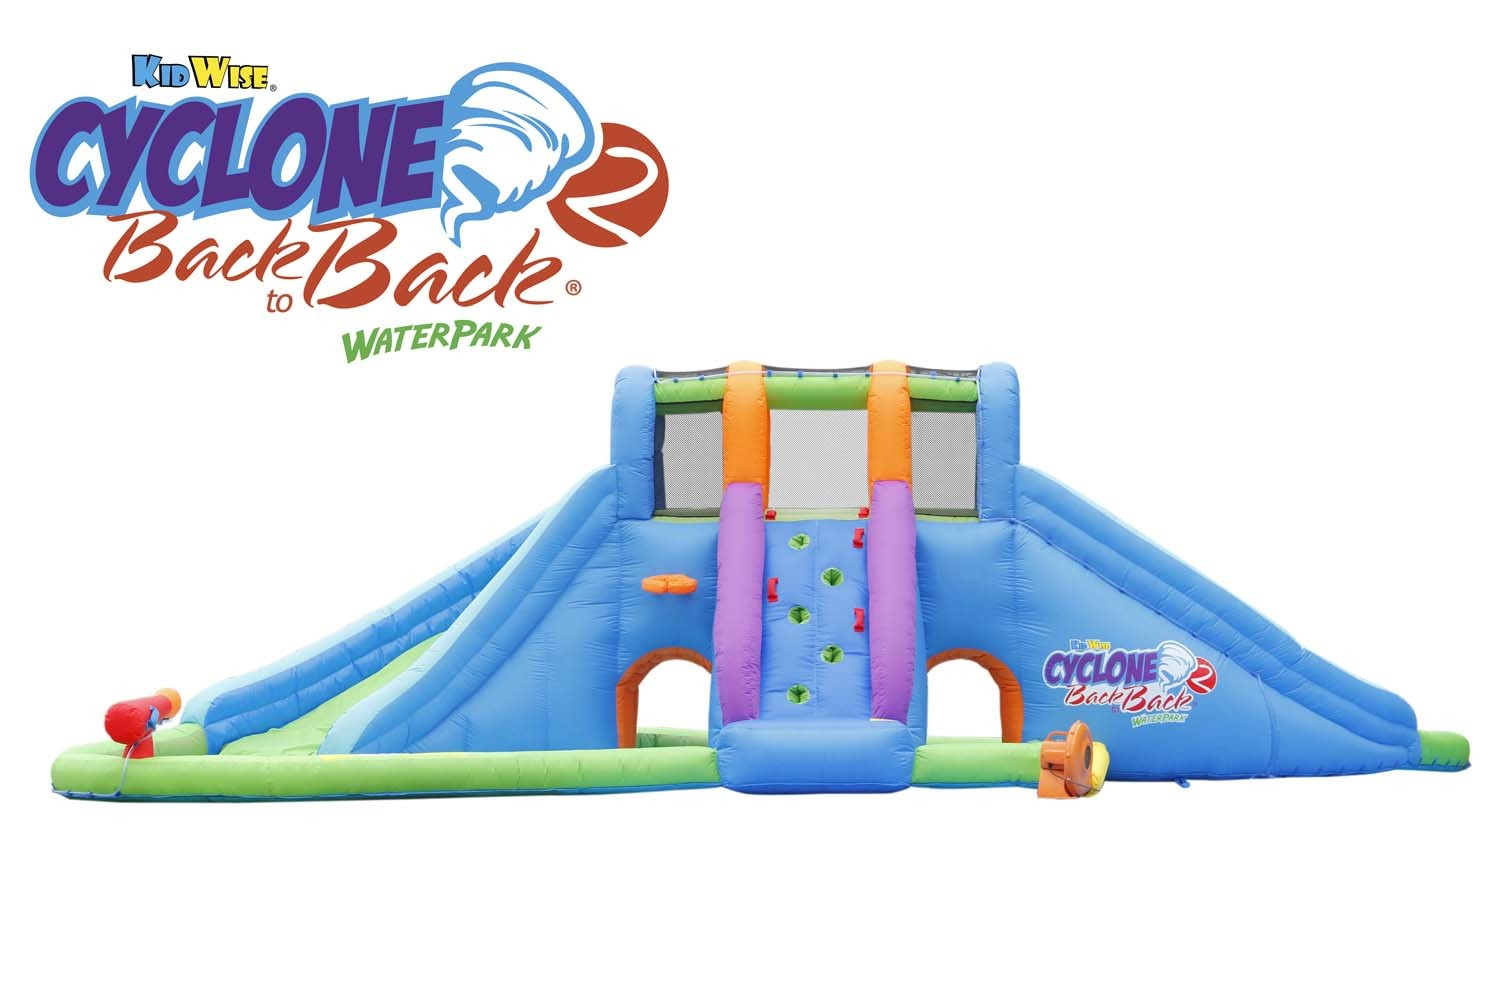 cyclone 2 back to back waterpark and lazy river